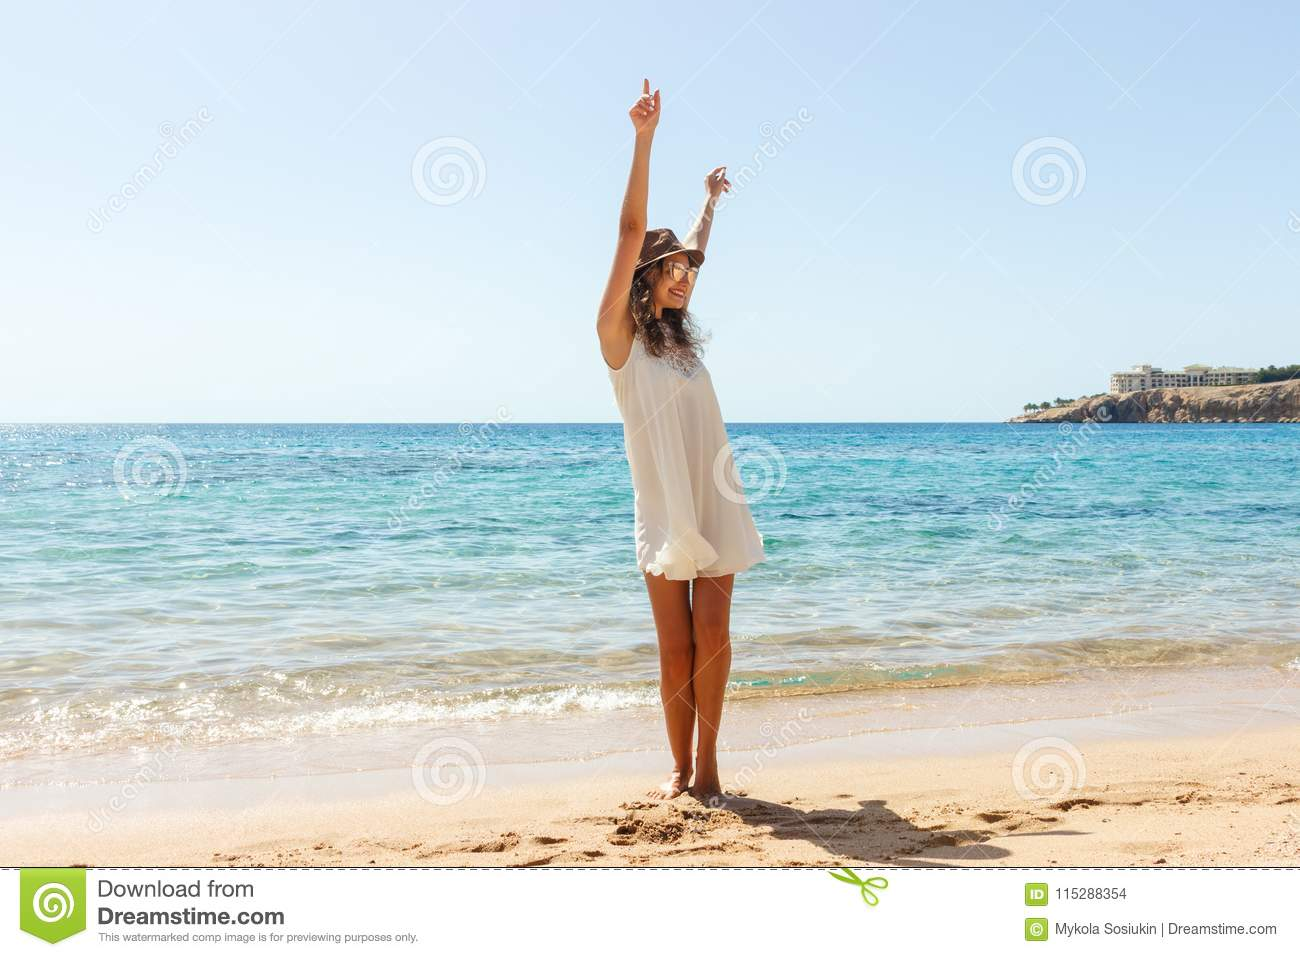 Freedom woman in free happiness bliss on beach. Smiling happy girl in white summer dress in vacation outdoors